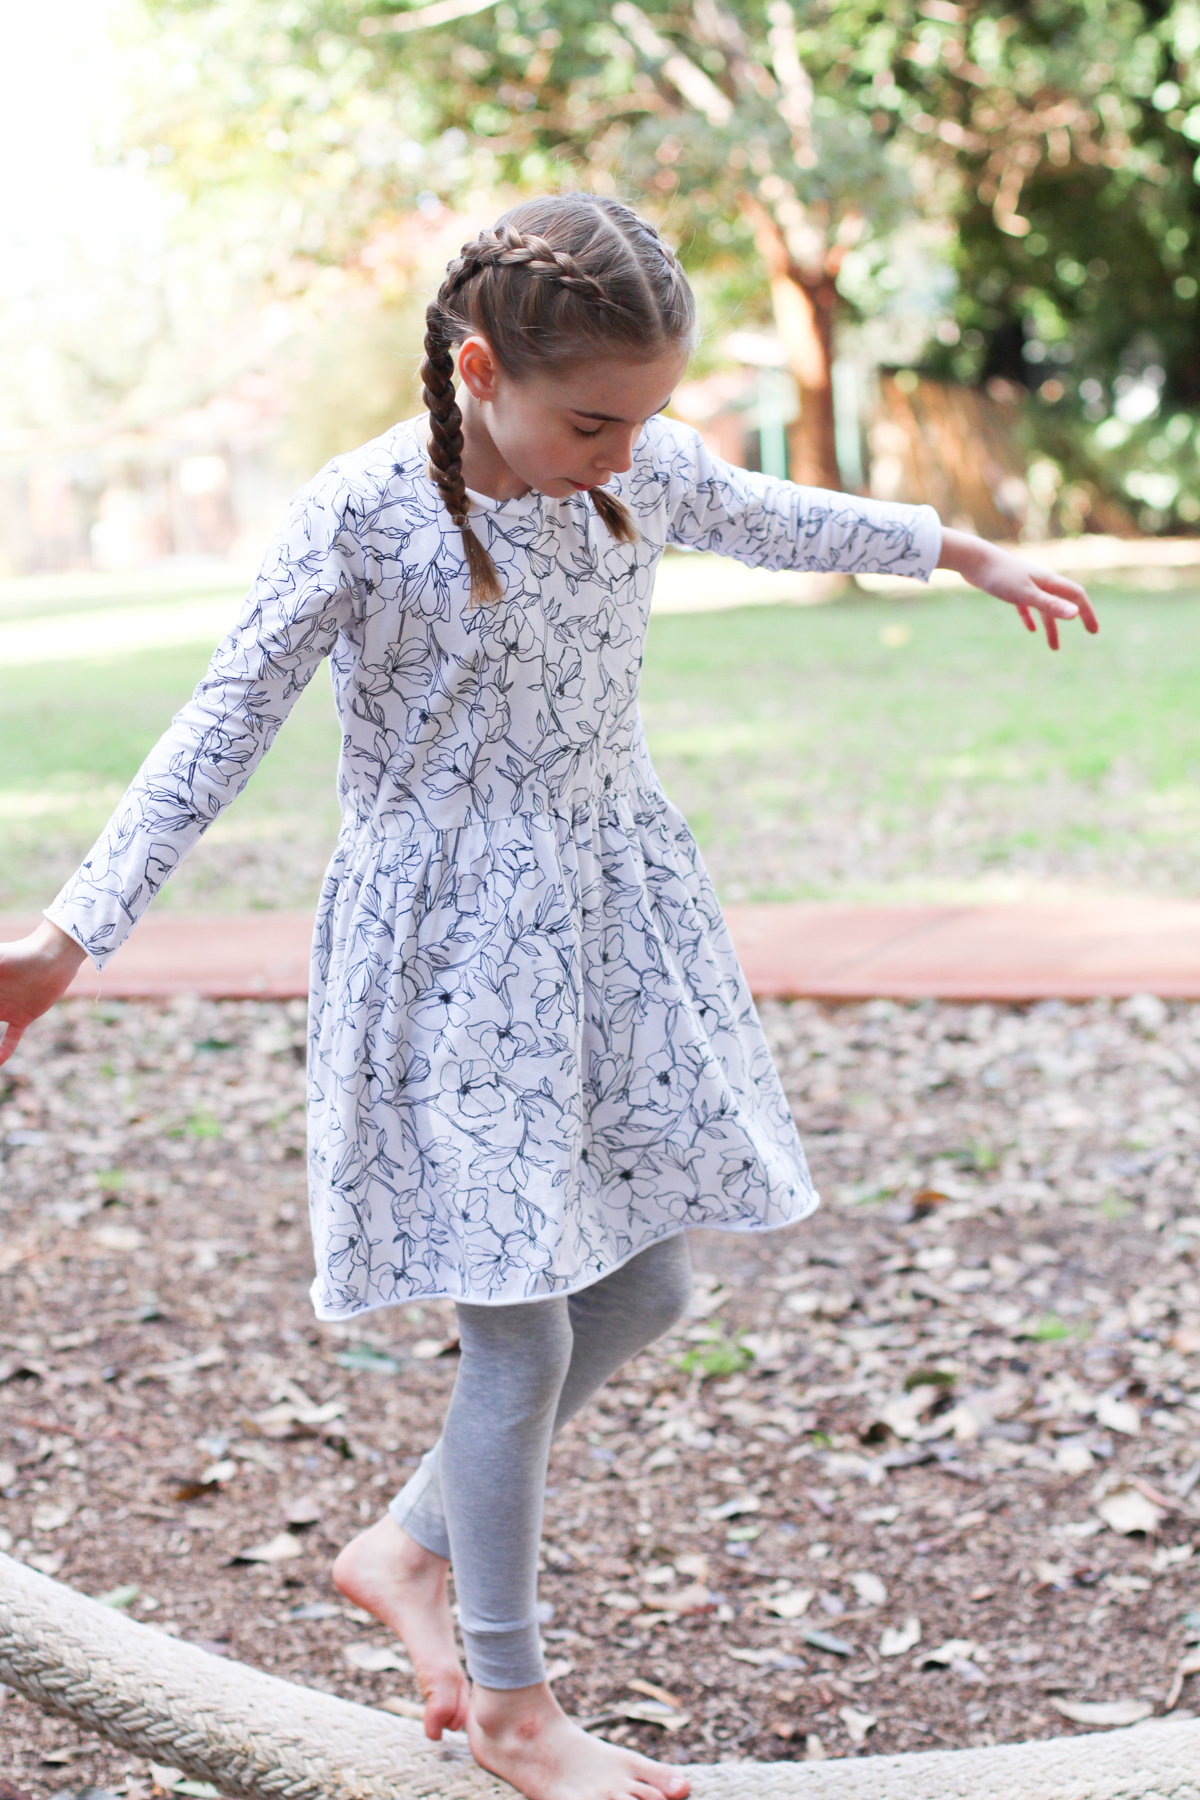 Bunny's floral Mini Briar dress hack + Mini Virginia leggings